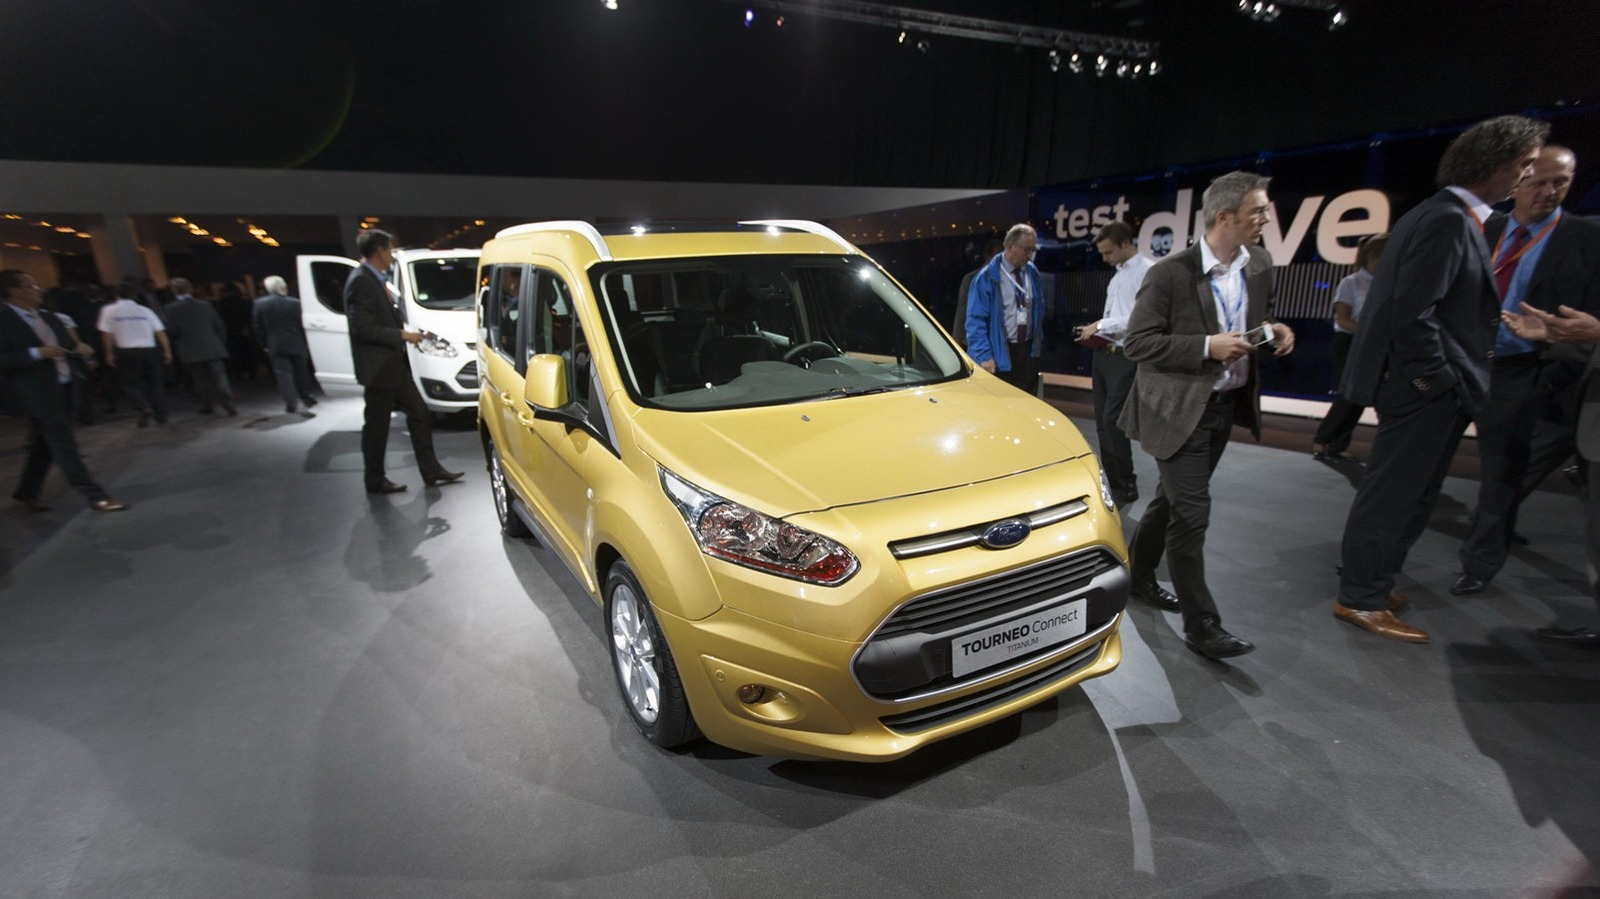 Ford Transit Connect Photo Gallery image to converter free download